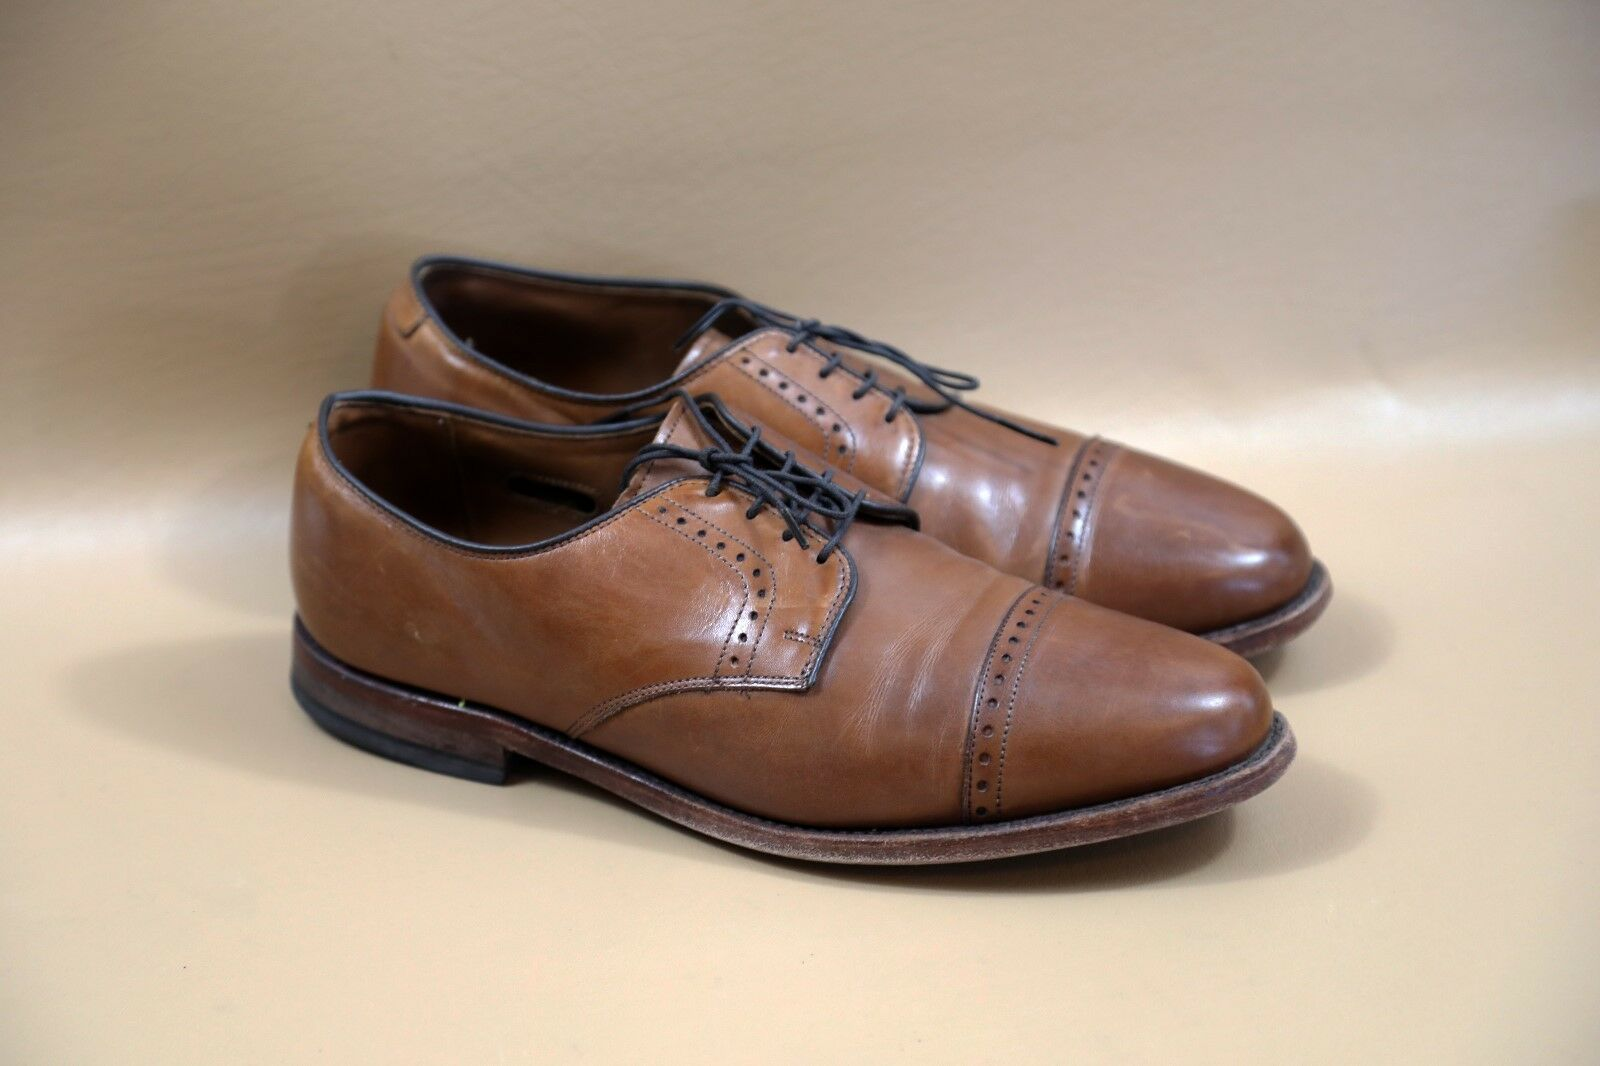 80 Allen Edmonds Clifton Oxford shoes Size 9 3E